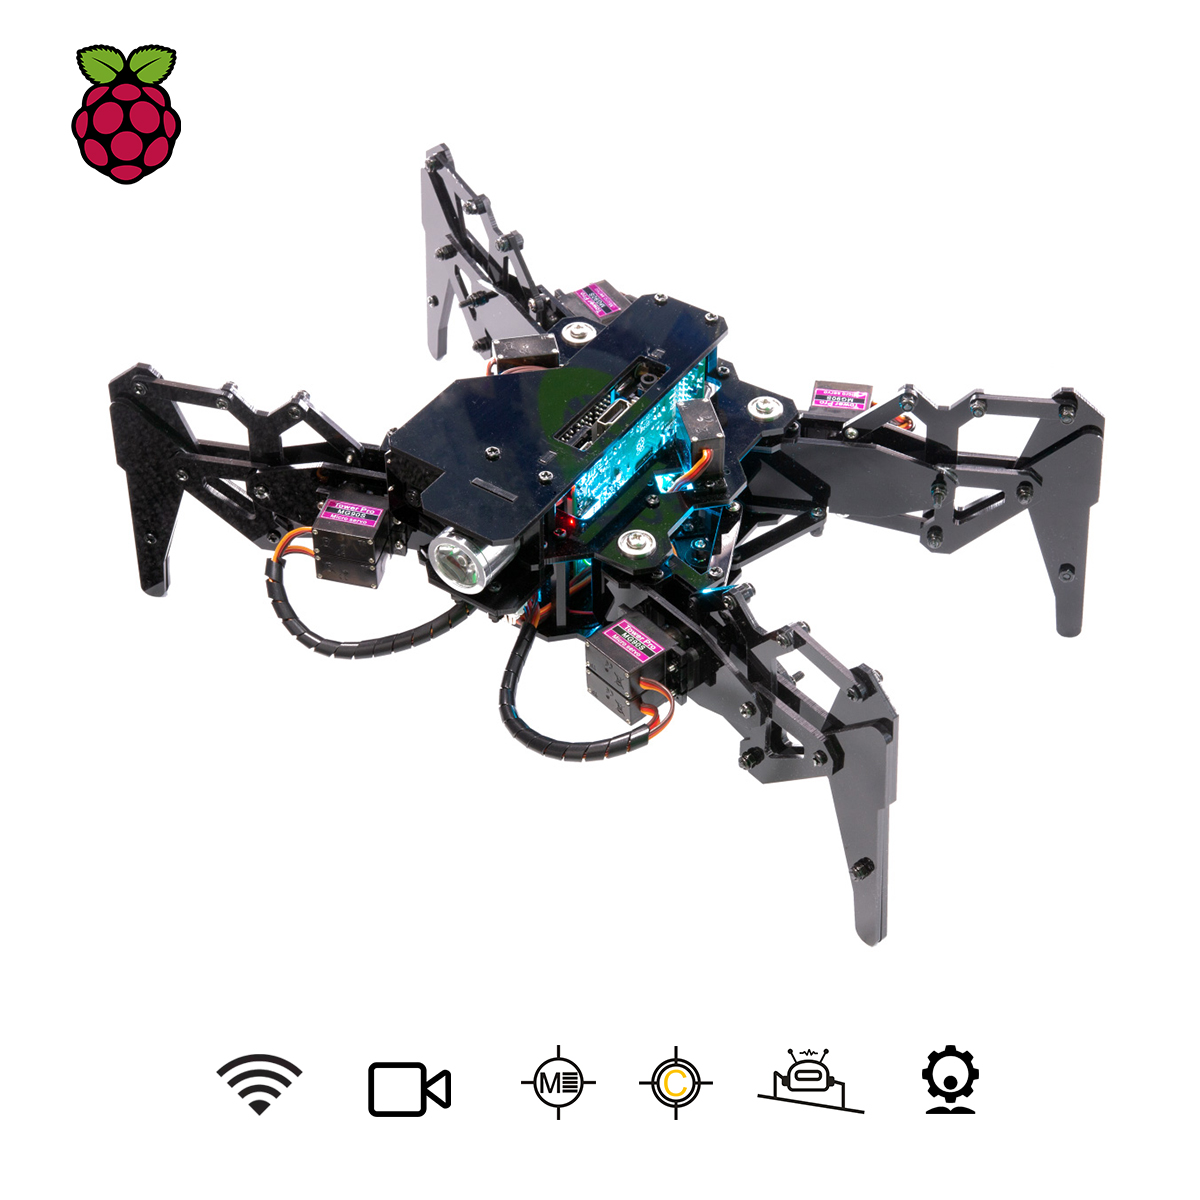 Adeept DarkPaw Bionic Quadruped Spider Robot Kit for Raspberry Pi 4/3 Model B+/B/2B, STEM Crawling Robot, OpenCV Tracking, Self-stabilizing